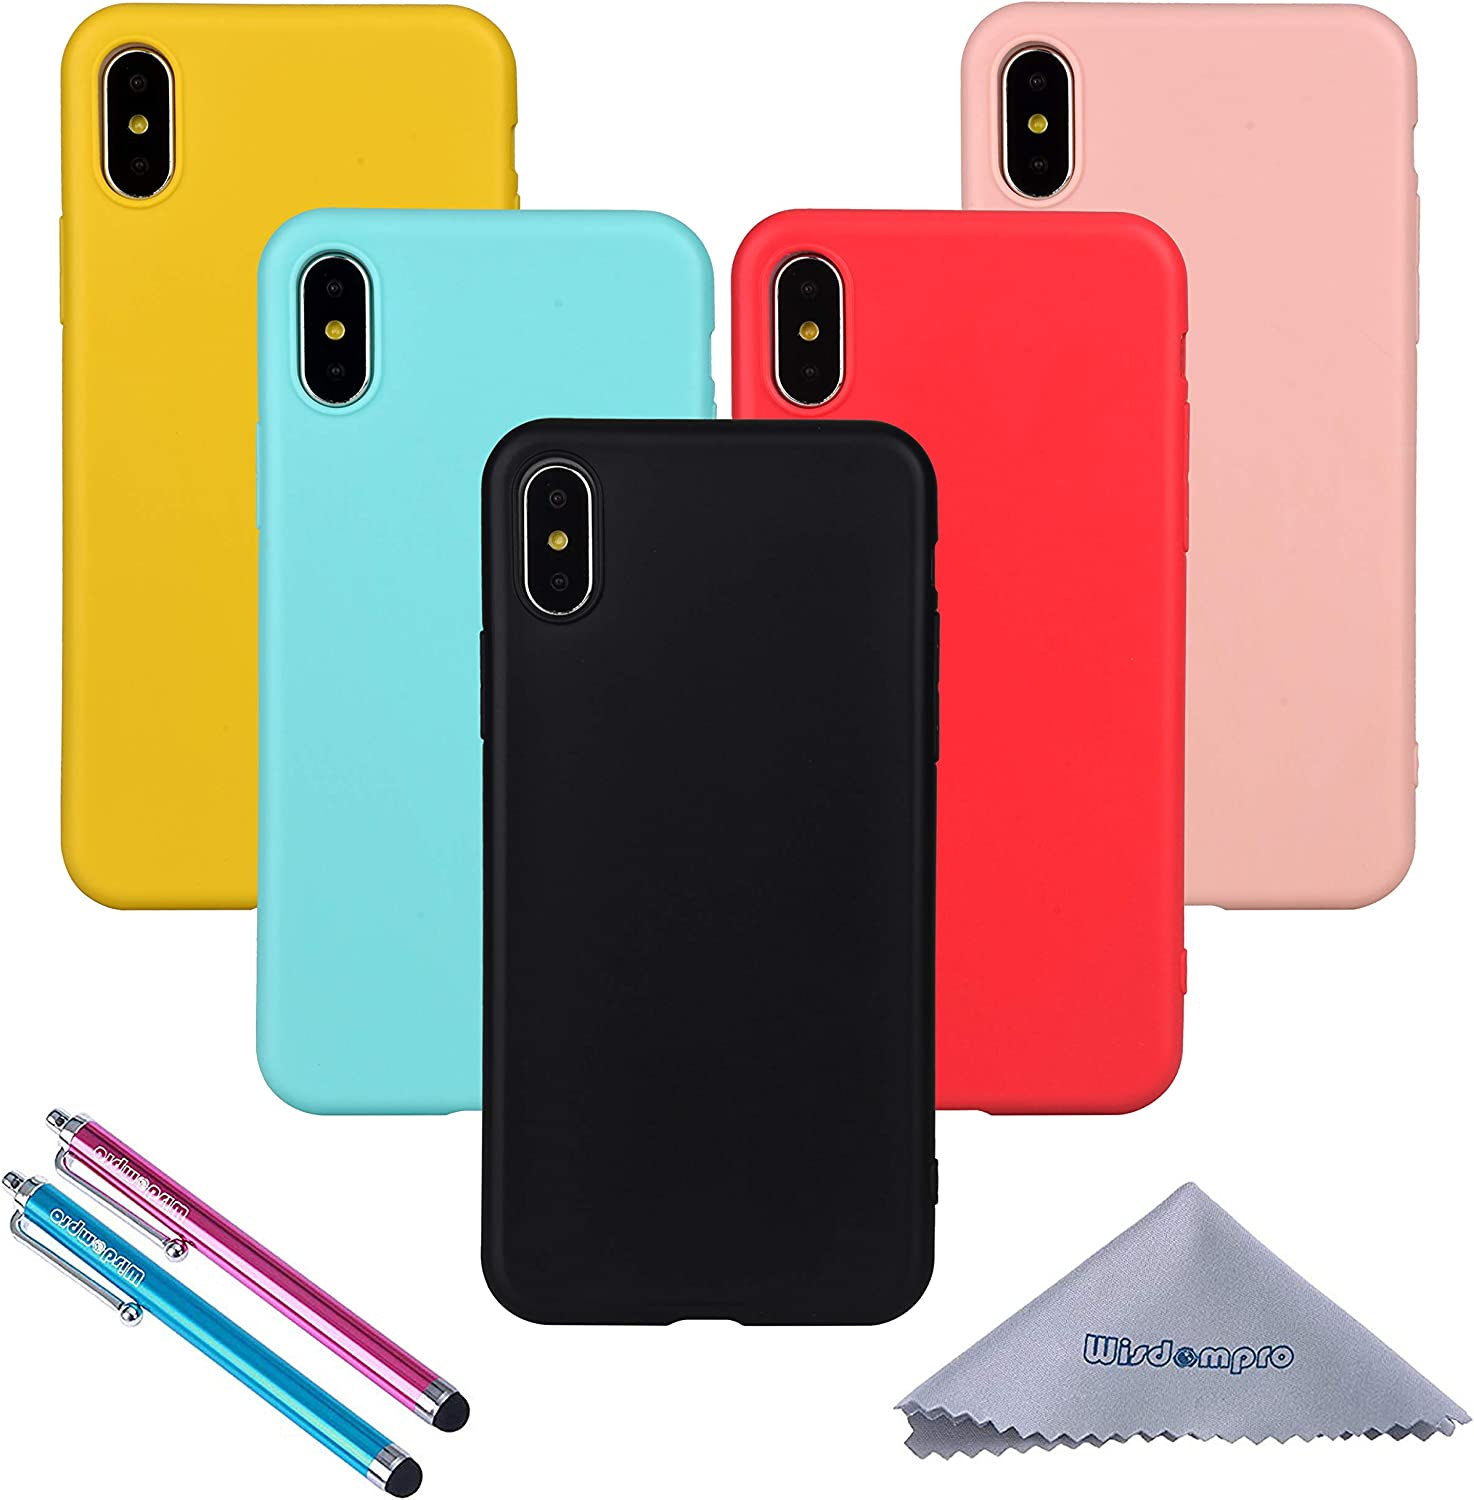 Wisdompro iPhone X Case, Bundle of 5 Pack Extra Thin Slim Jelly Soft TPU Gel Protective Case Cover for Apple iPhone X (Black, Aqua Blue, Naked Skin Pink, Yellow, Red)- Candy Color